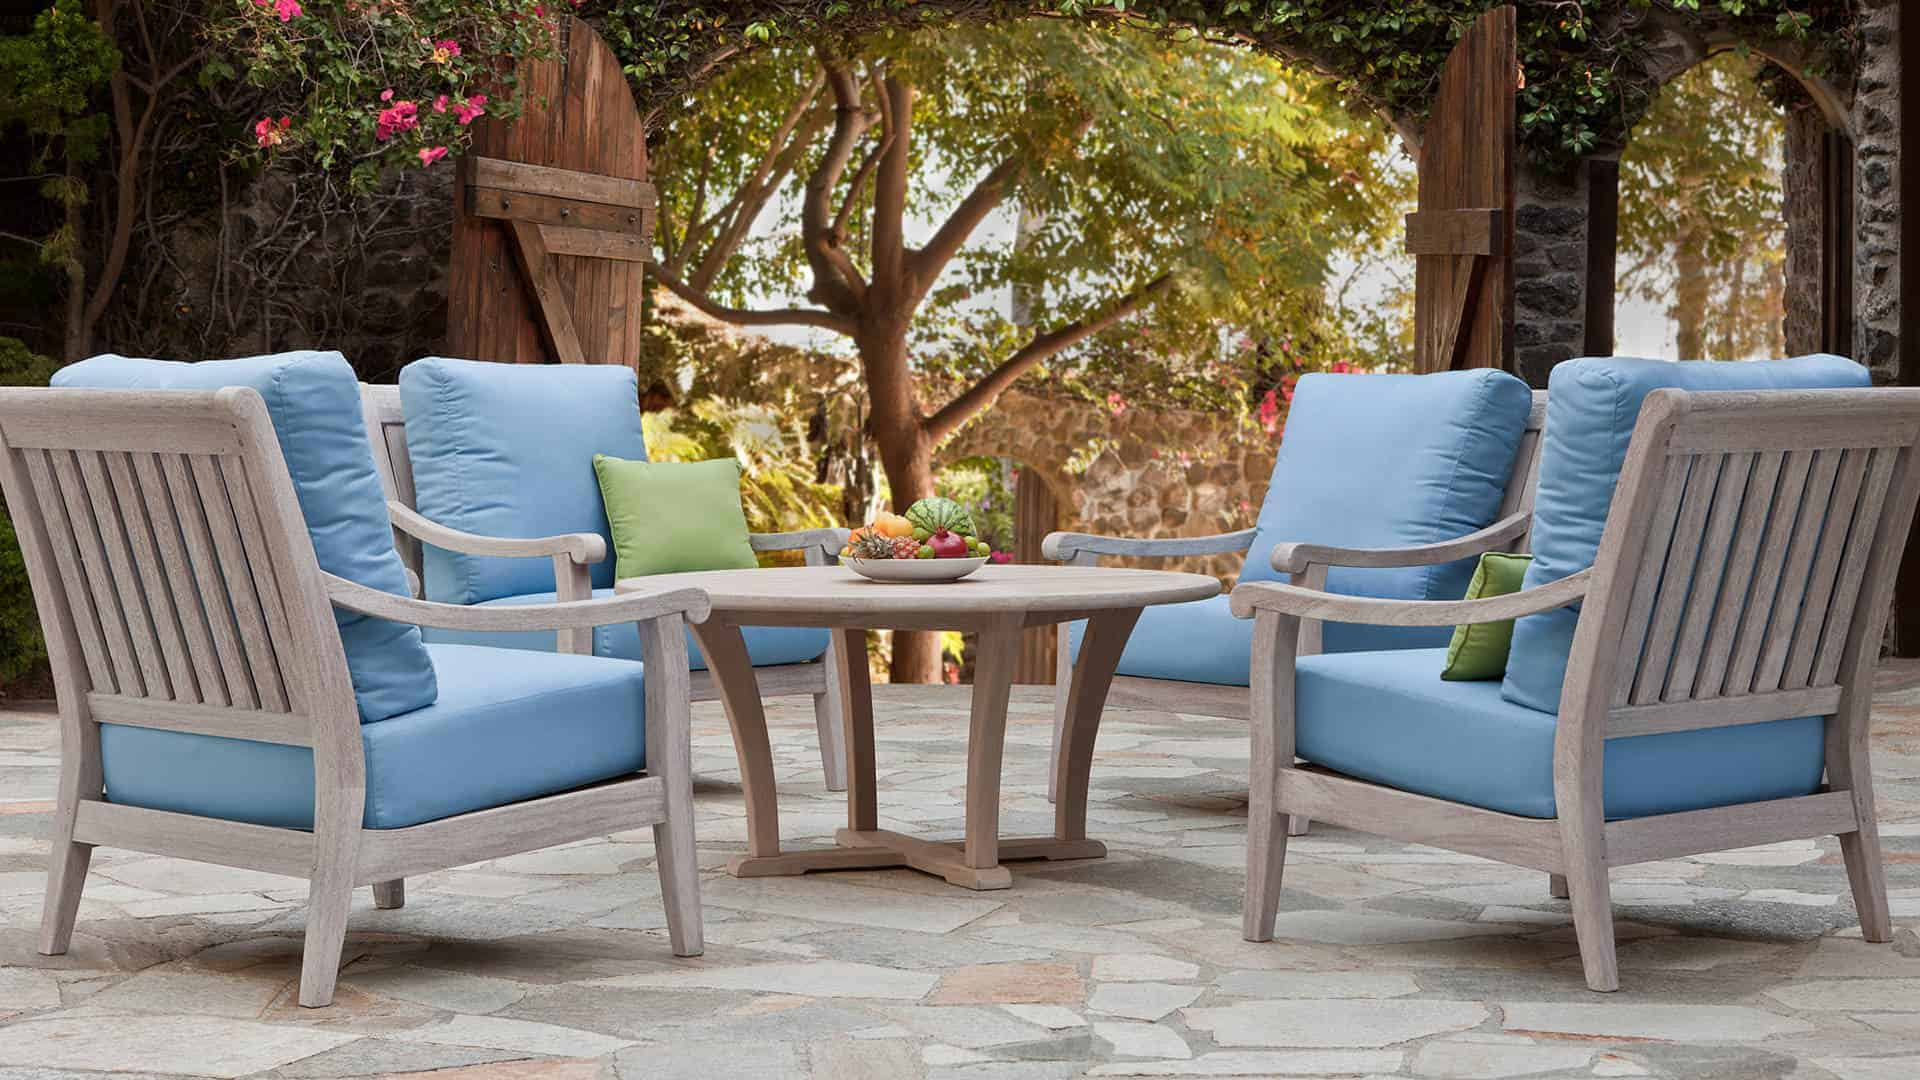 Commercial Outdoor Furniture By Jensen Leisure